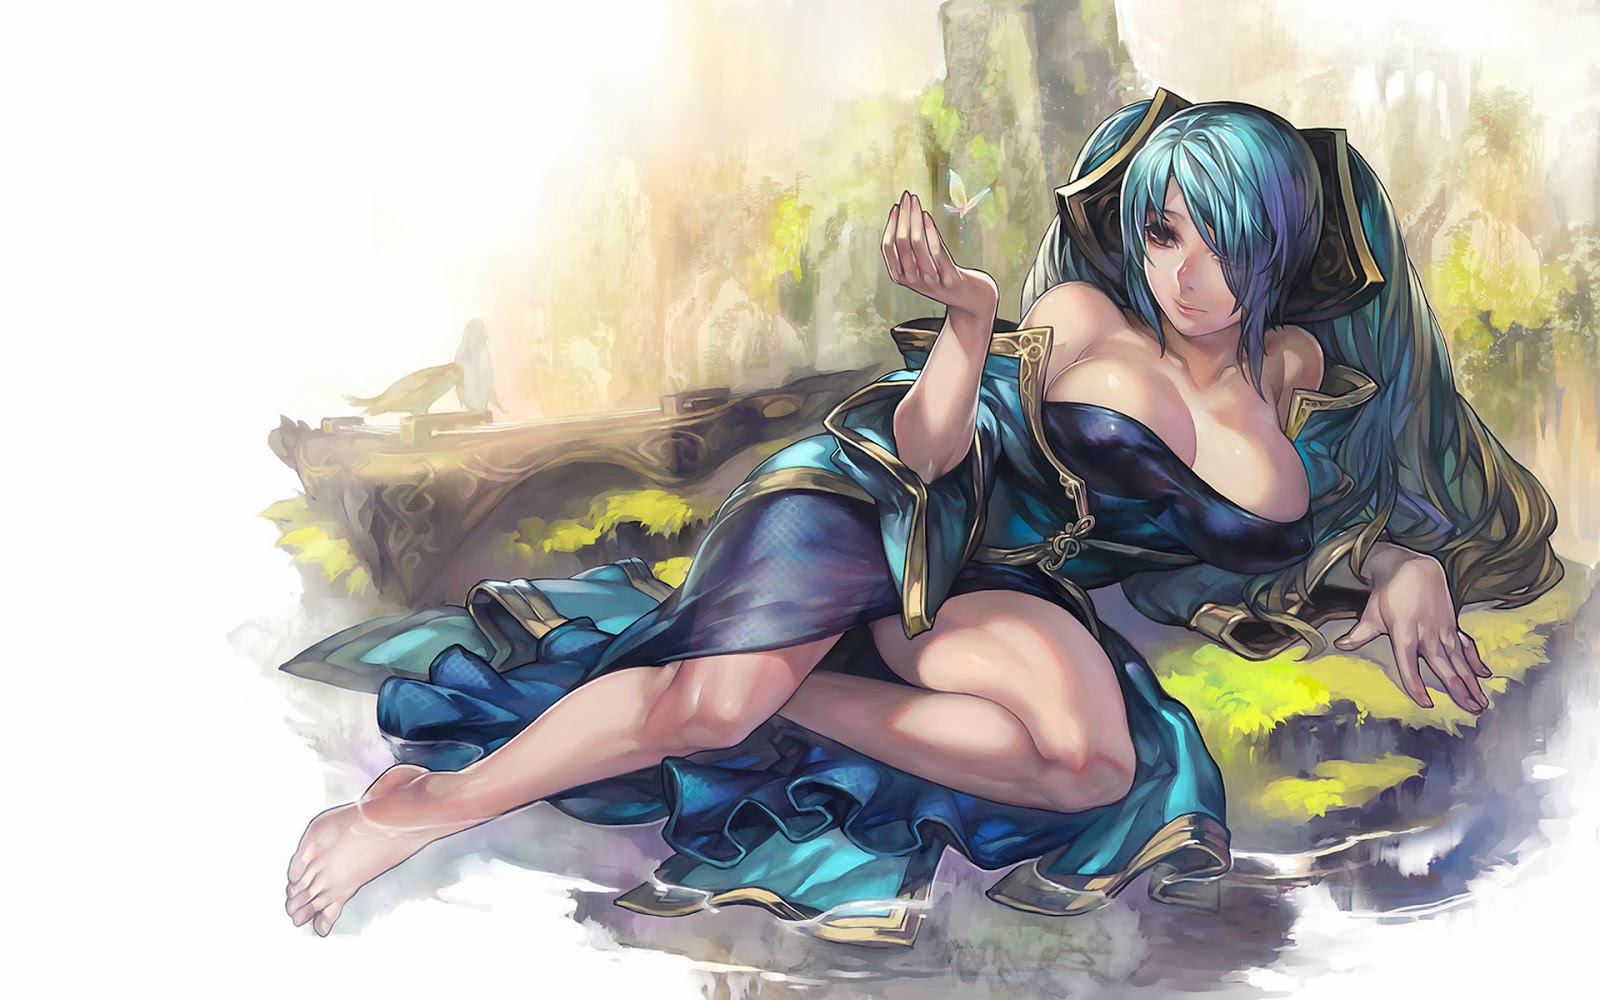 sona lol league of legends sexy cleavge girl champion wallpaper hd 1920x1200 widescreen j9.